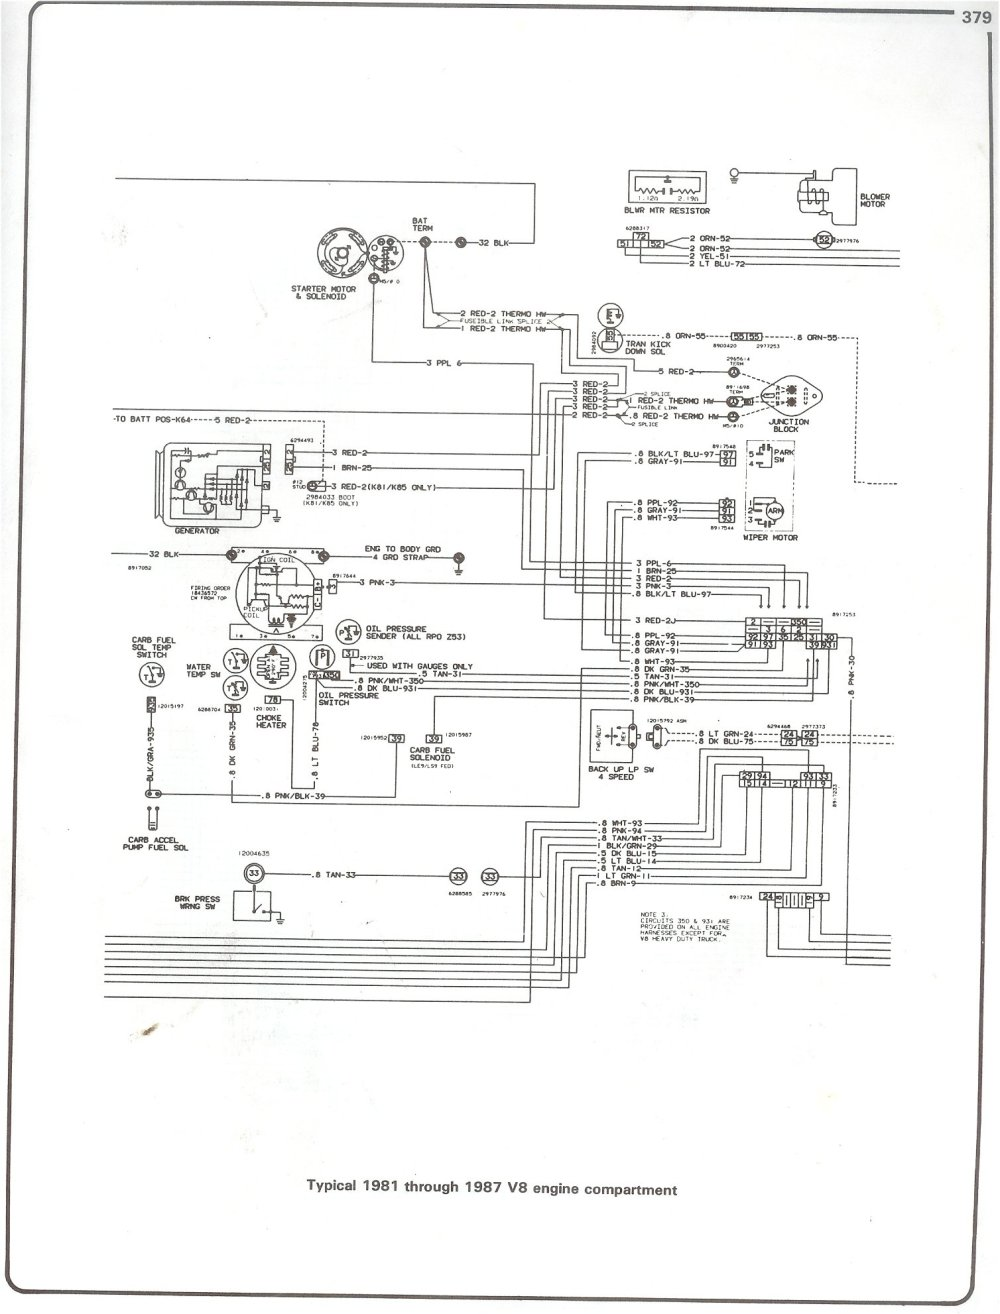 medium resolution of complete 73 87 wiring diagrams 87 chevy truck wiring diagram 86 chevy wiring diagram